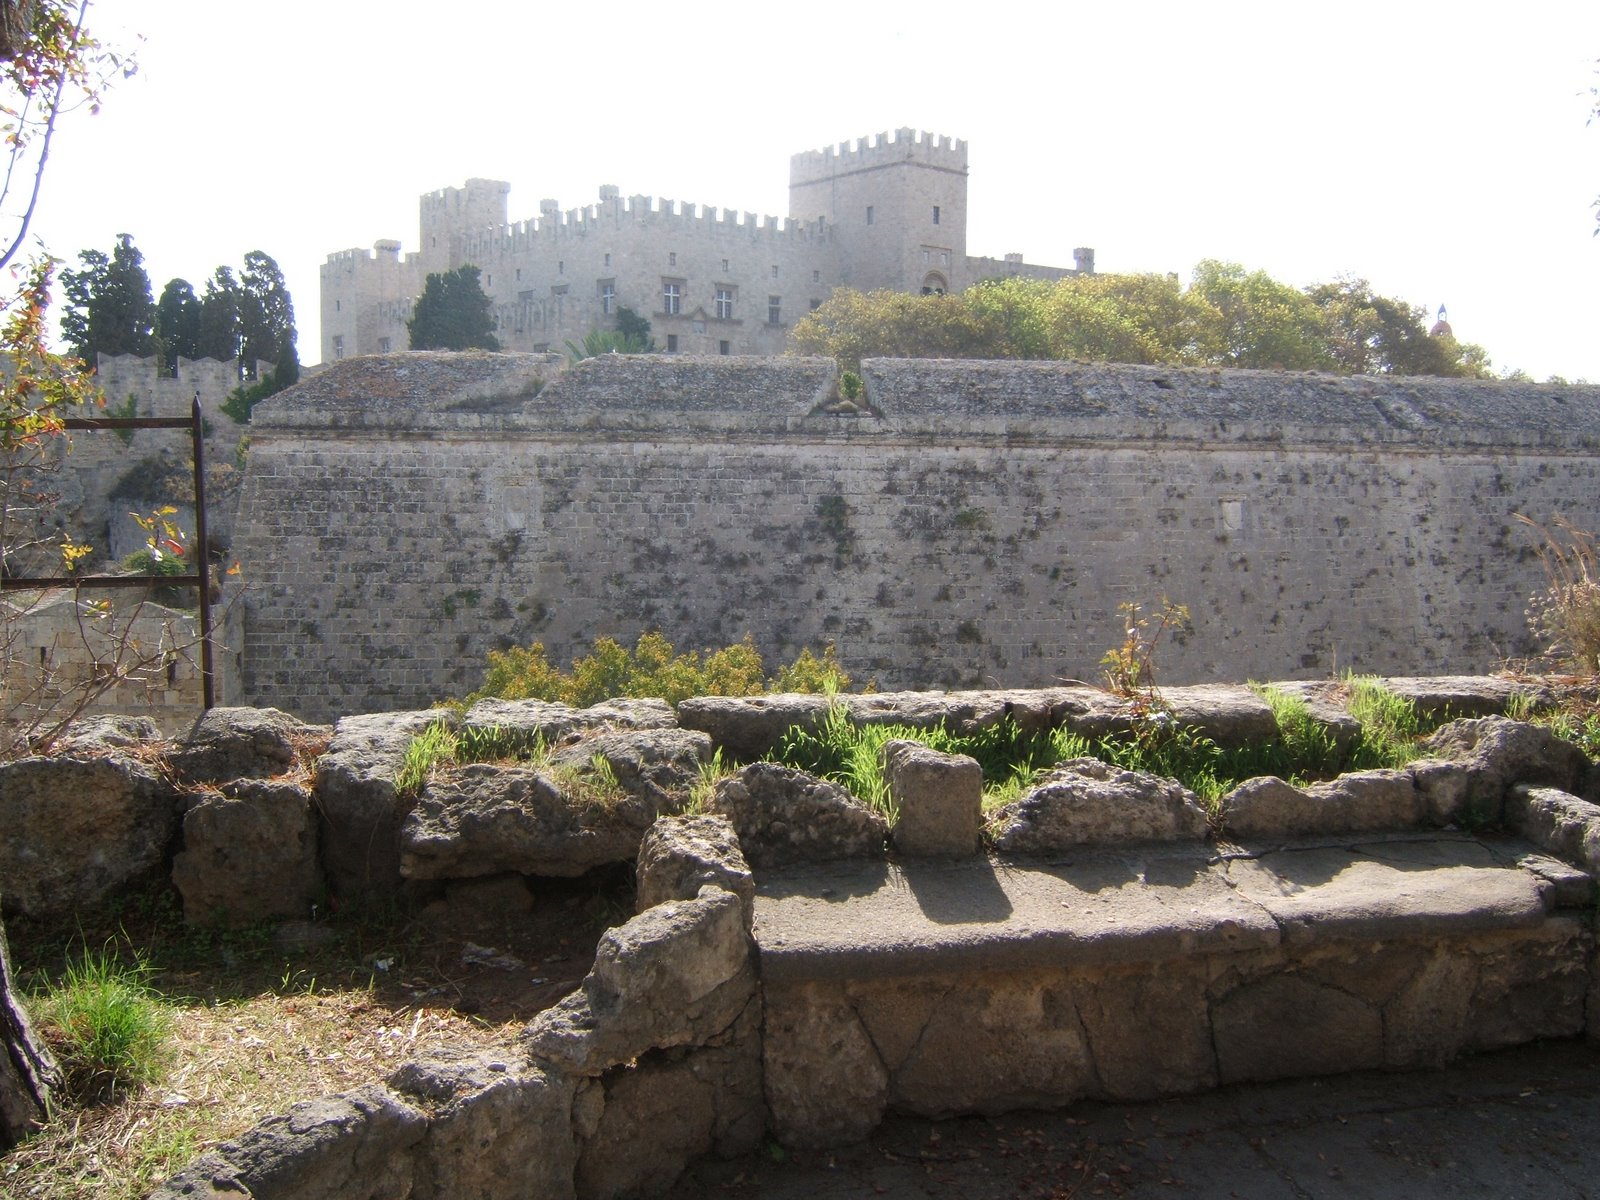 The castle of the Knight's of St. John.